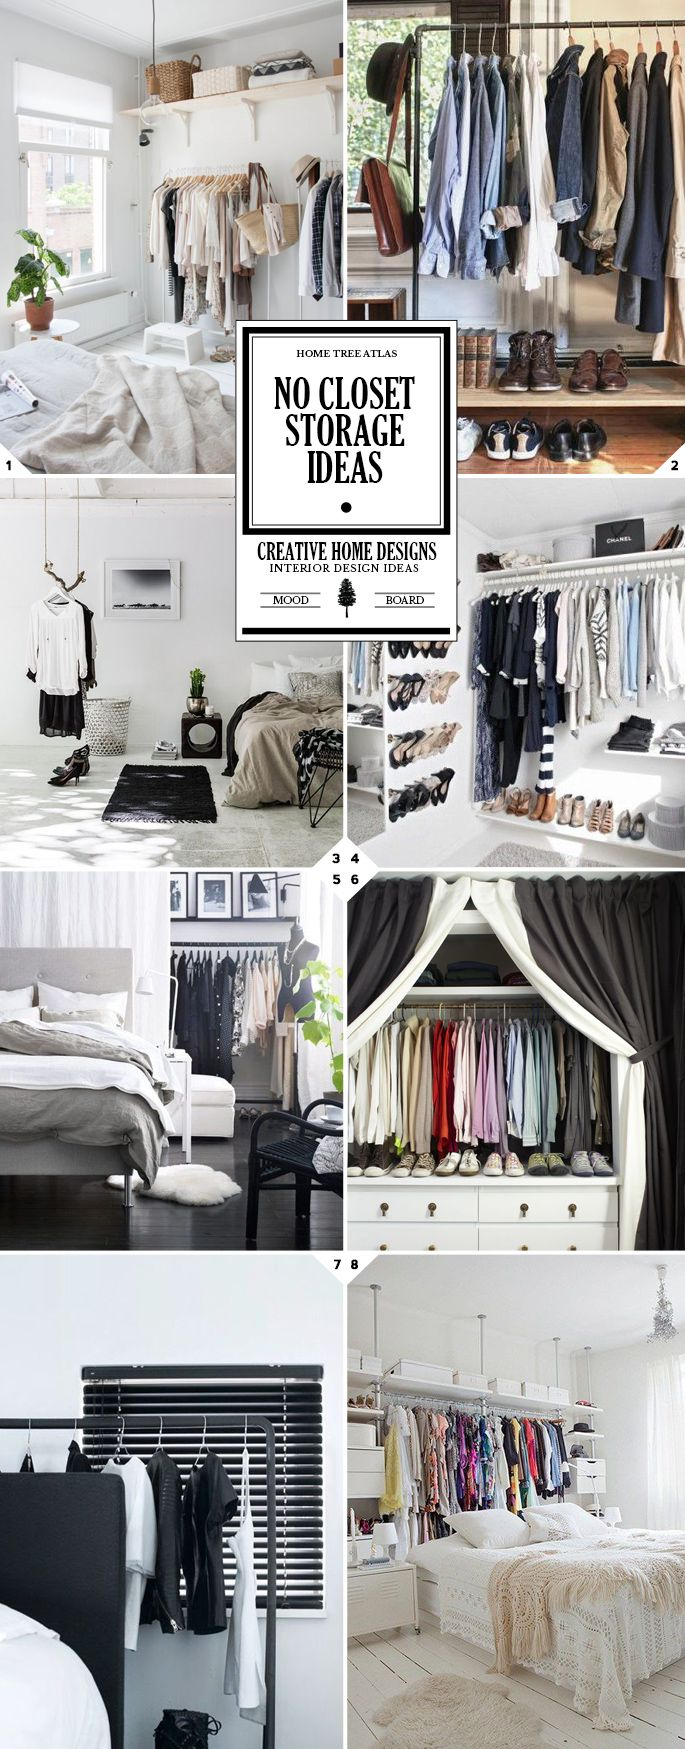 Getting Creative  No Closet Solutions and Storage Ideas Best 25 Open closets ideas on Pinterest Stylish bedroom